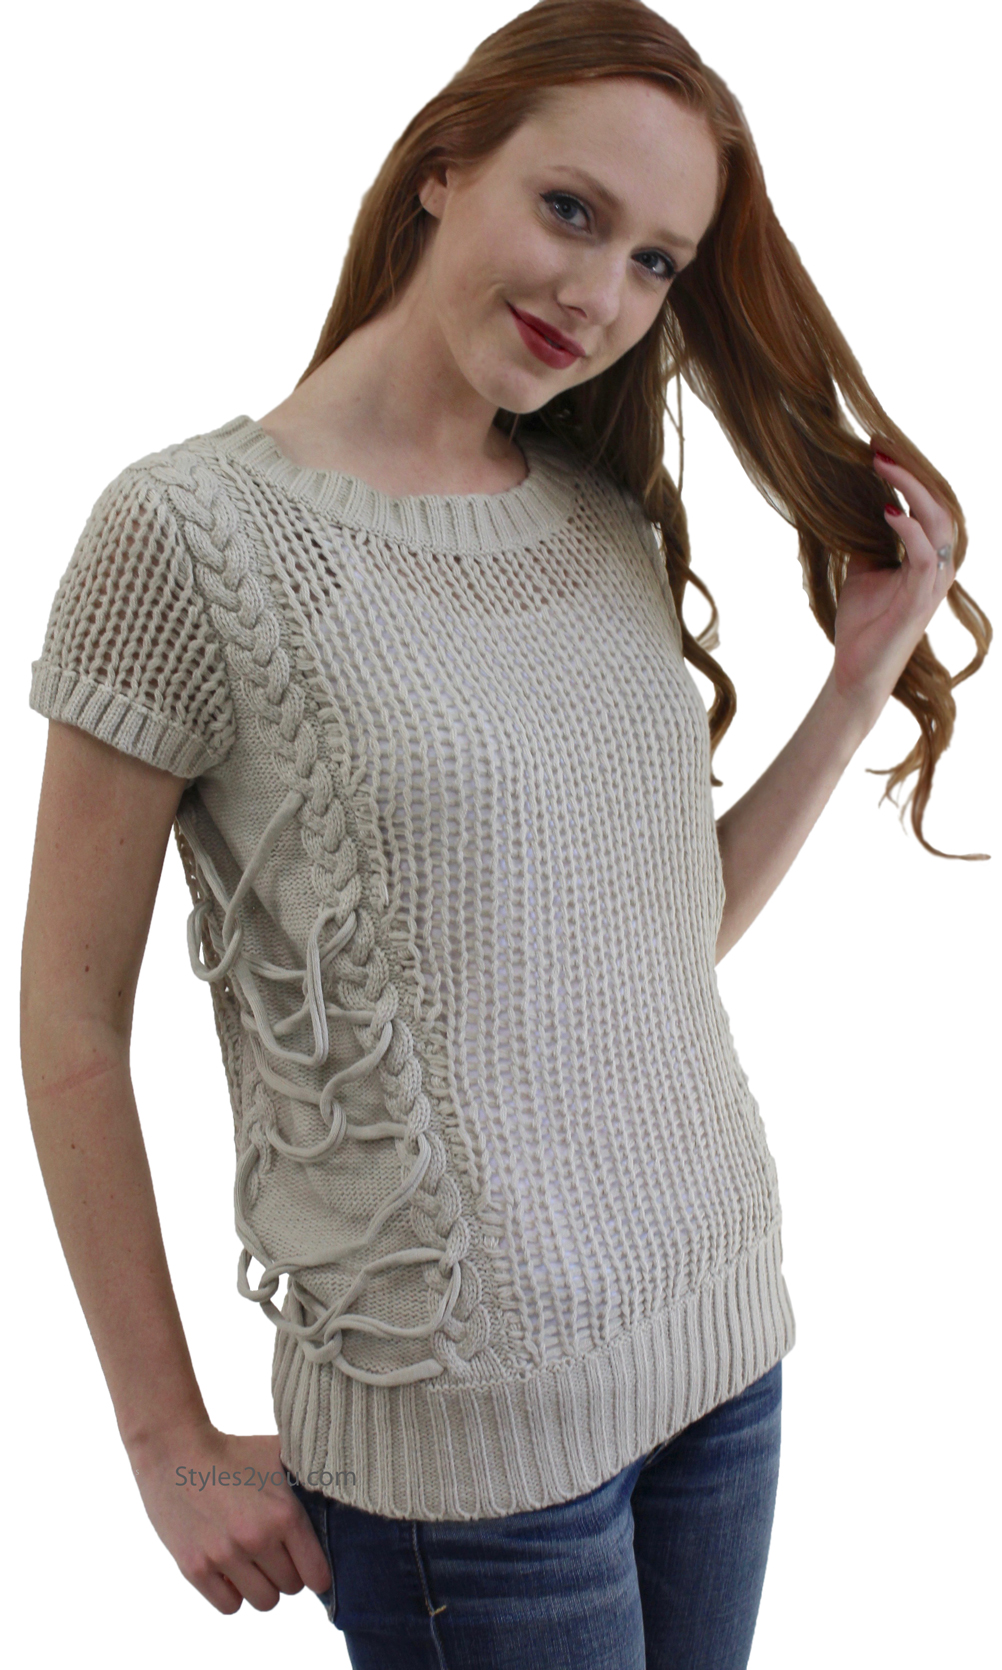 Jackie Unique Ladies Sweater Top In Taupe Wow Couture